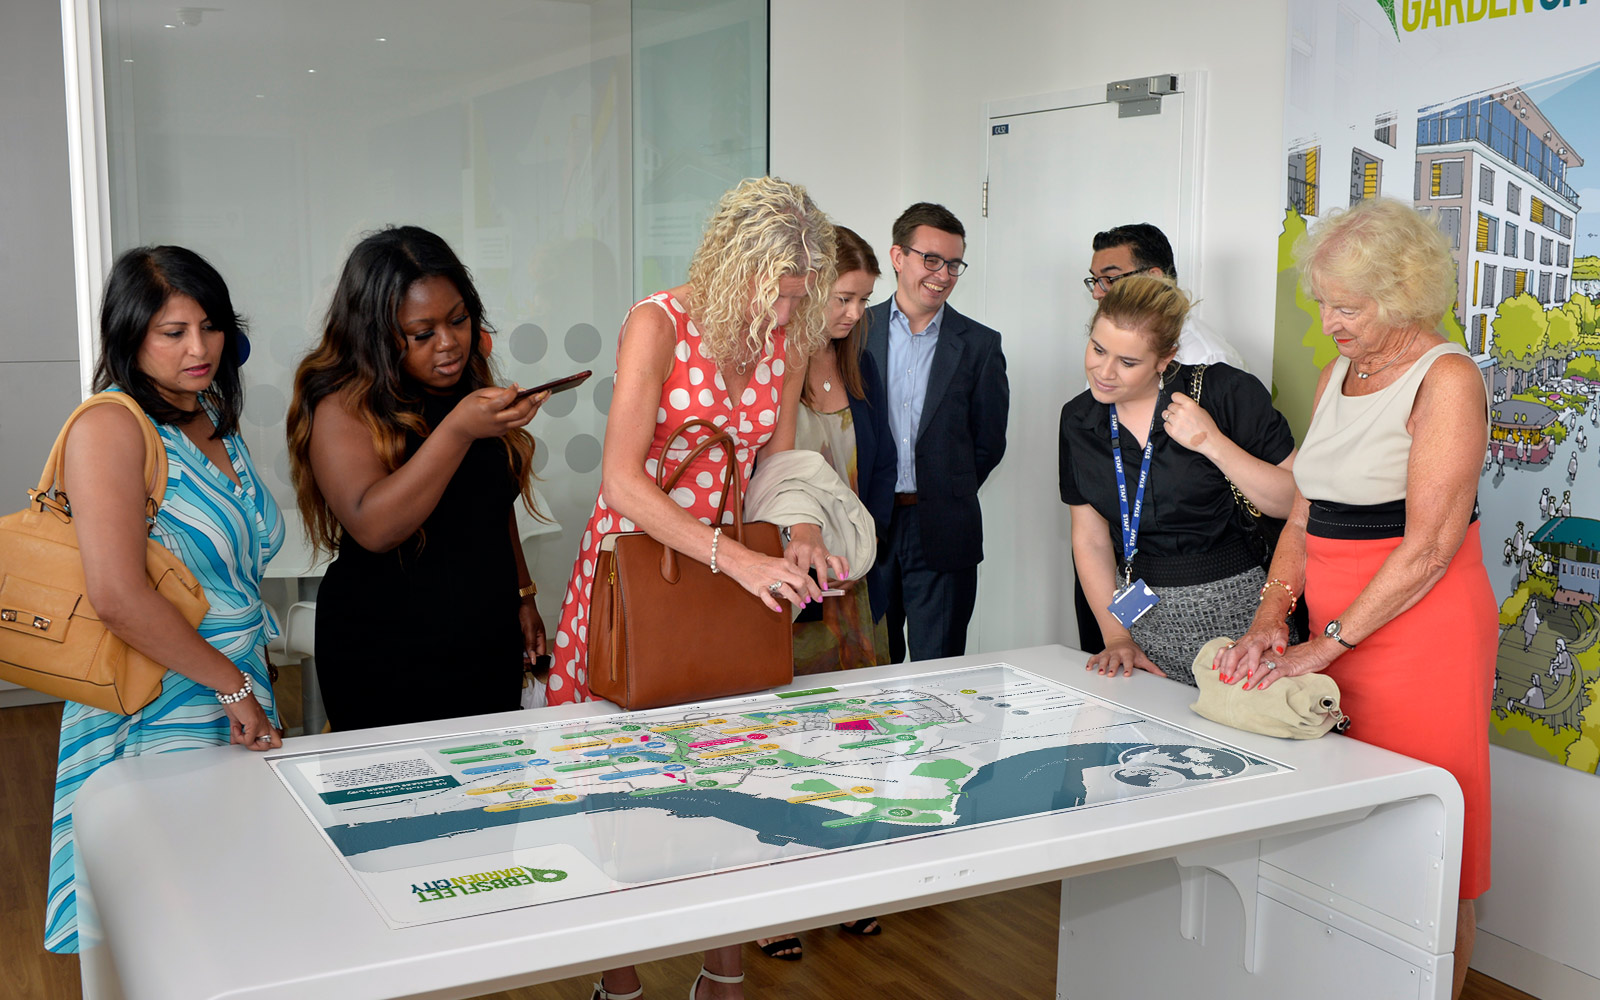 group of people smiling and interacting with ebbsfleet touchscreen display on white table in office